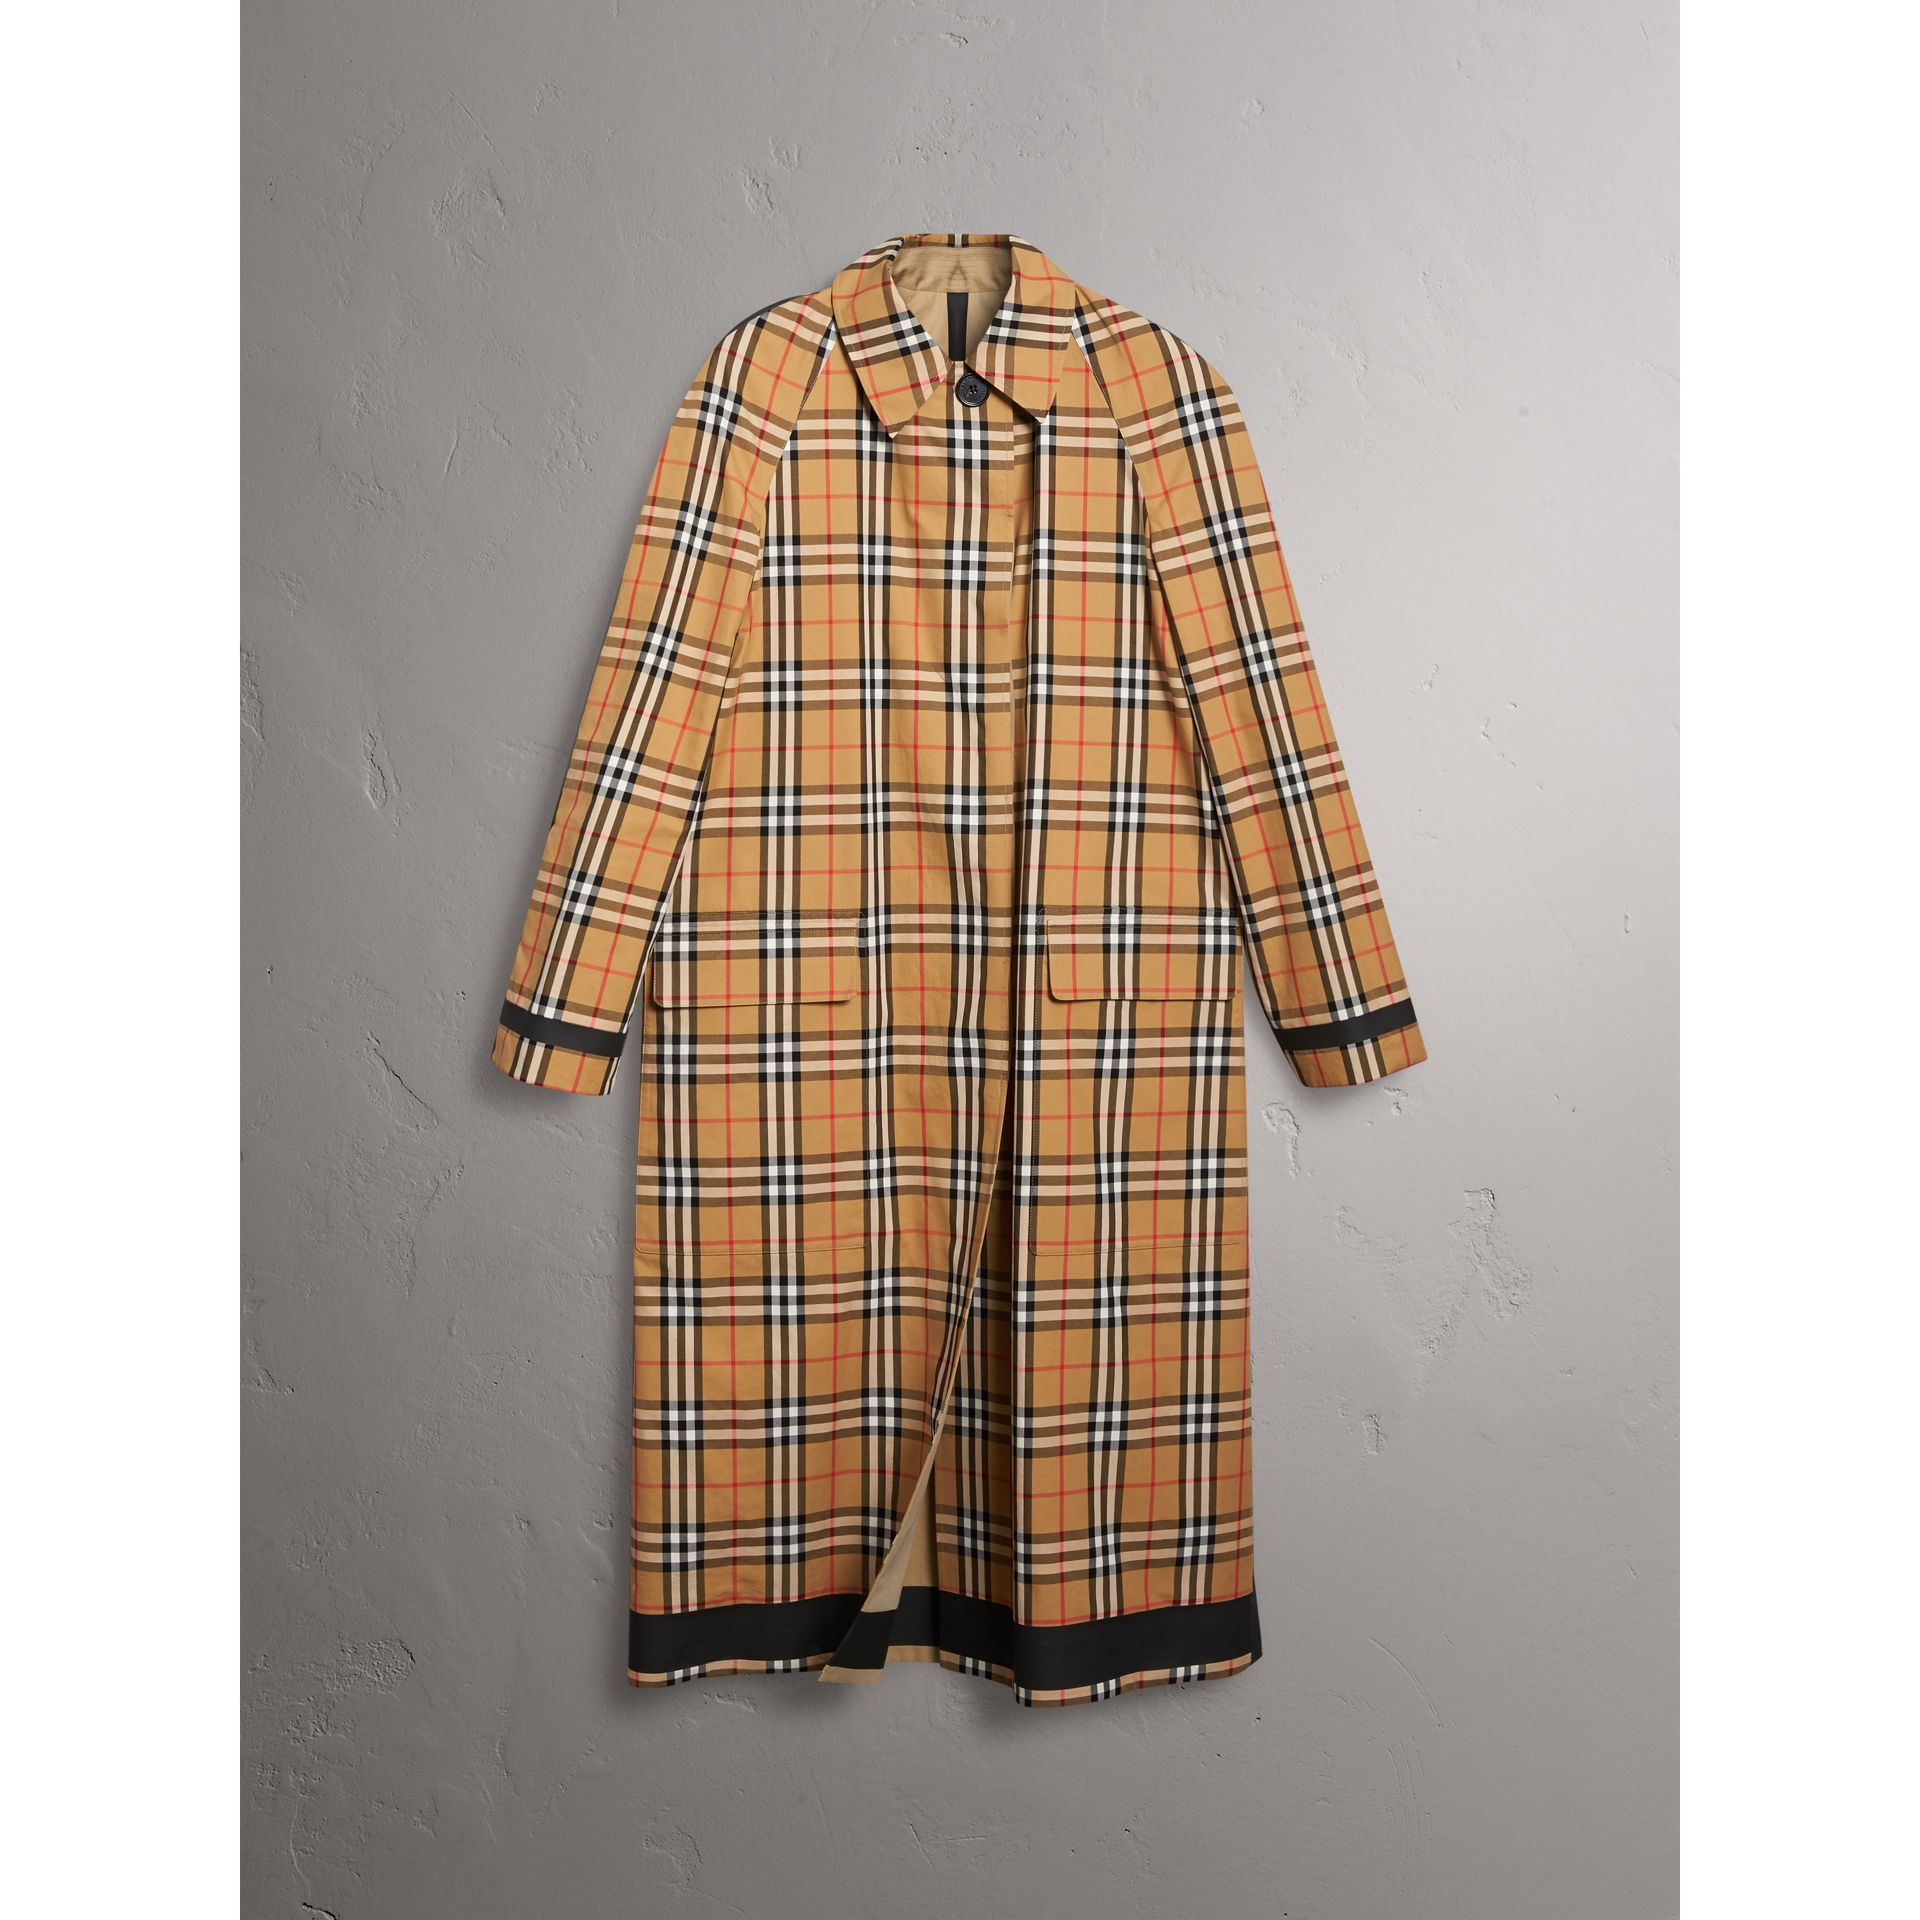 Cappotto car coat double face in gabardine con motivo Vintage check (Giallo Antico) - Donna | Burberry - immagine della galleria 4